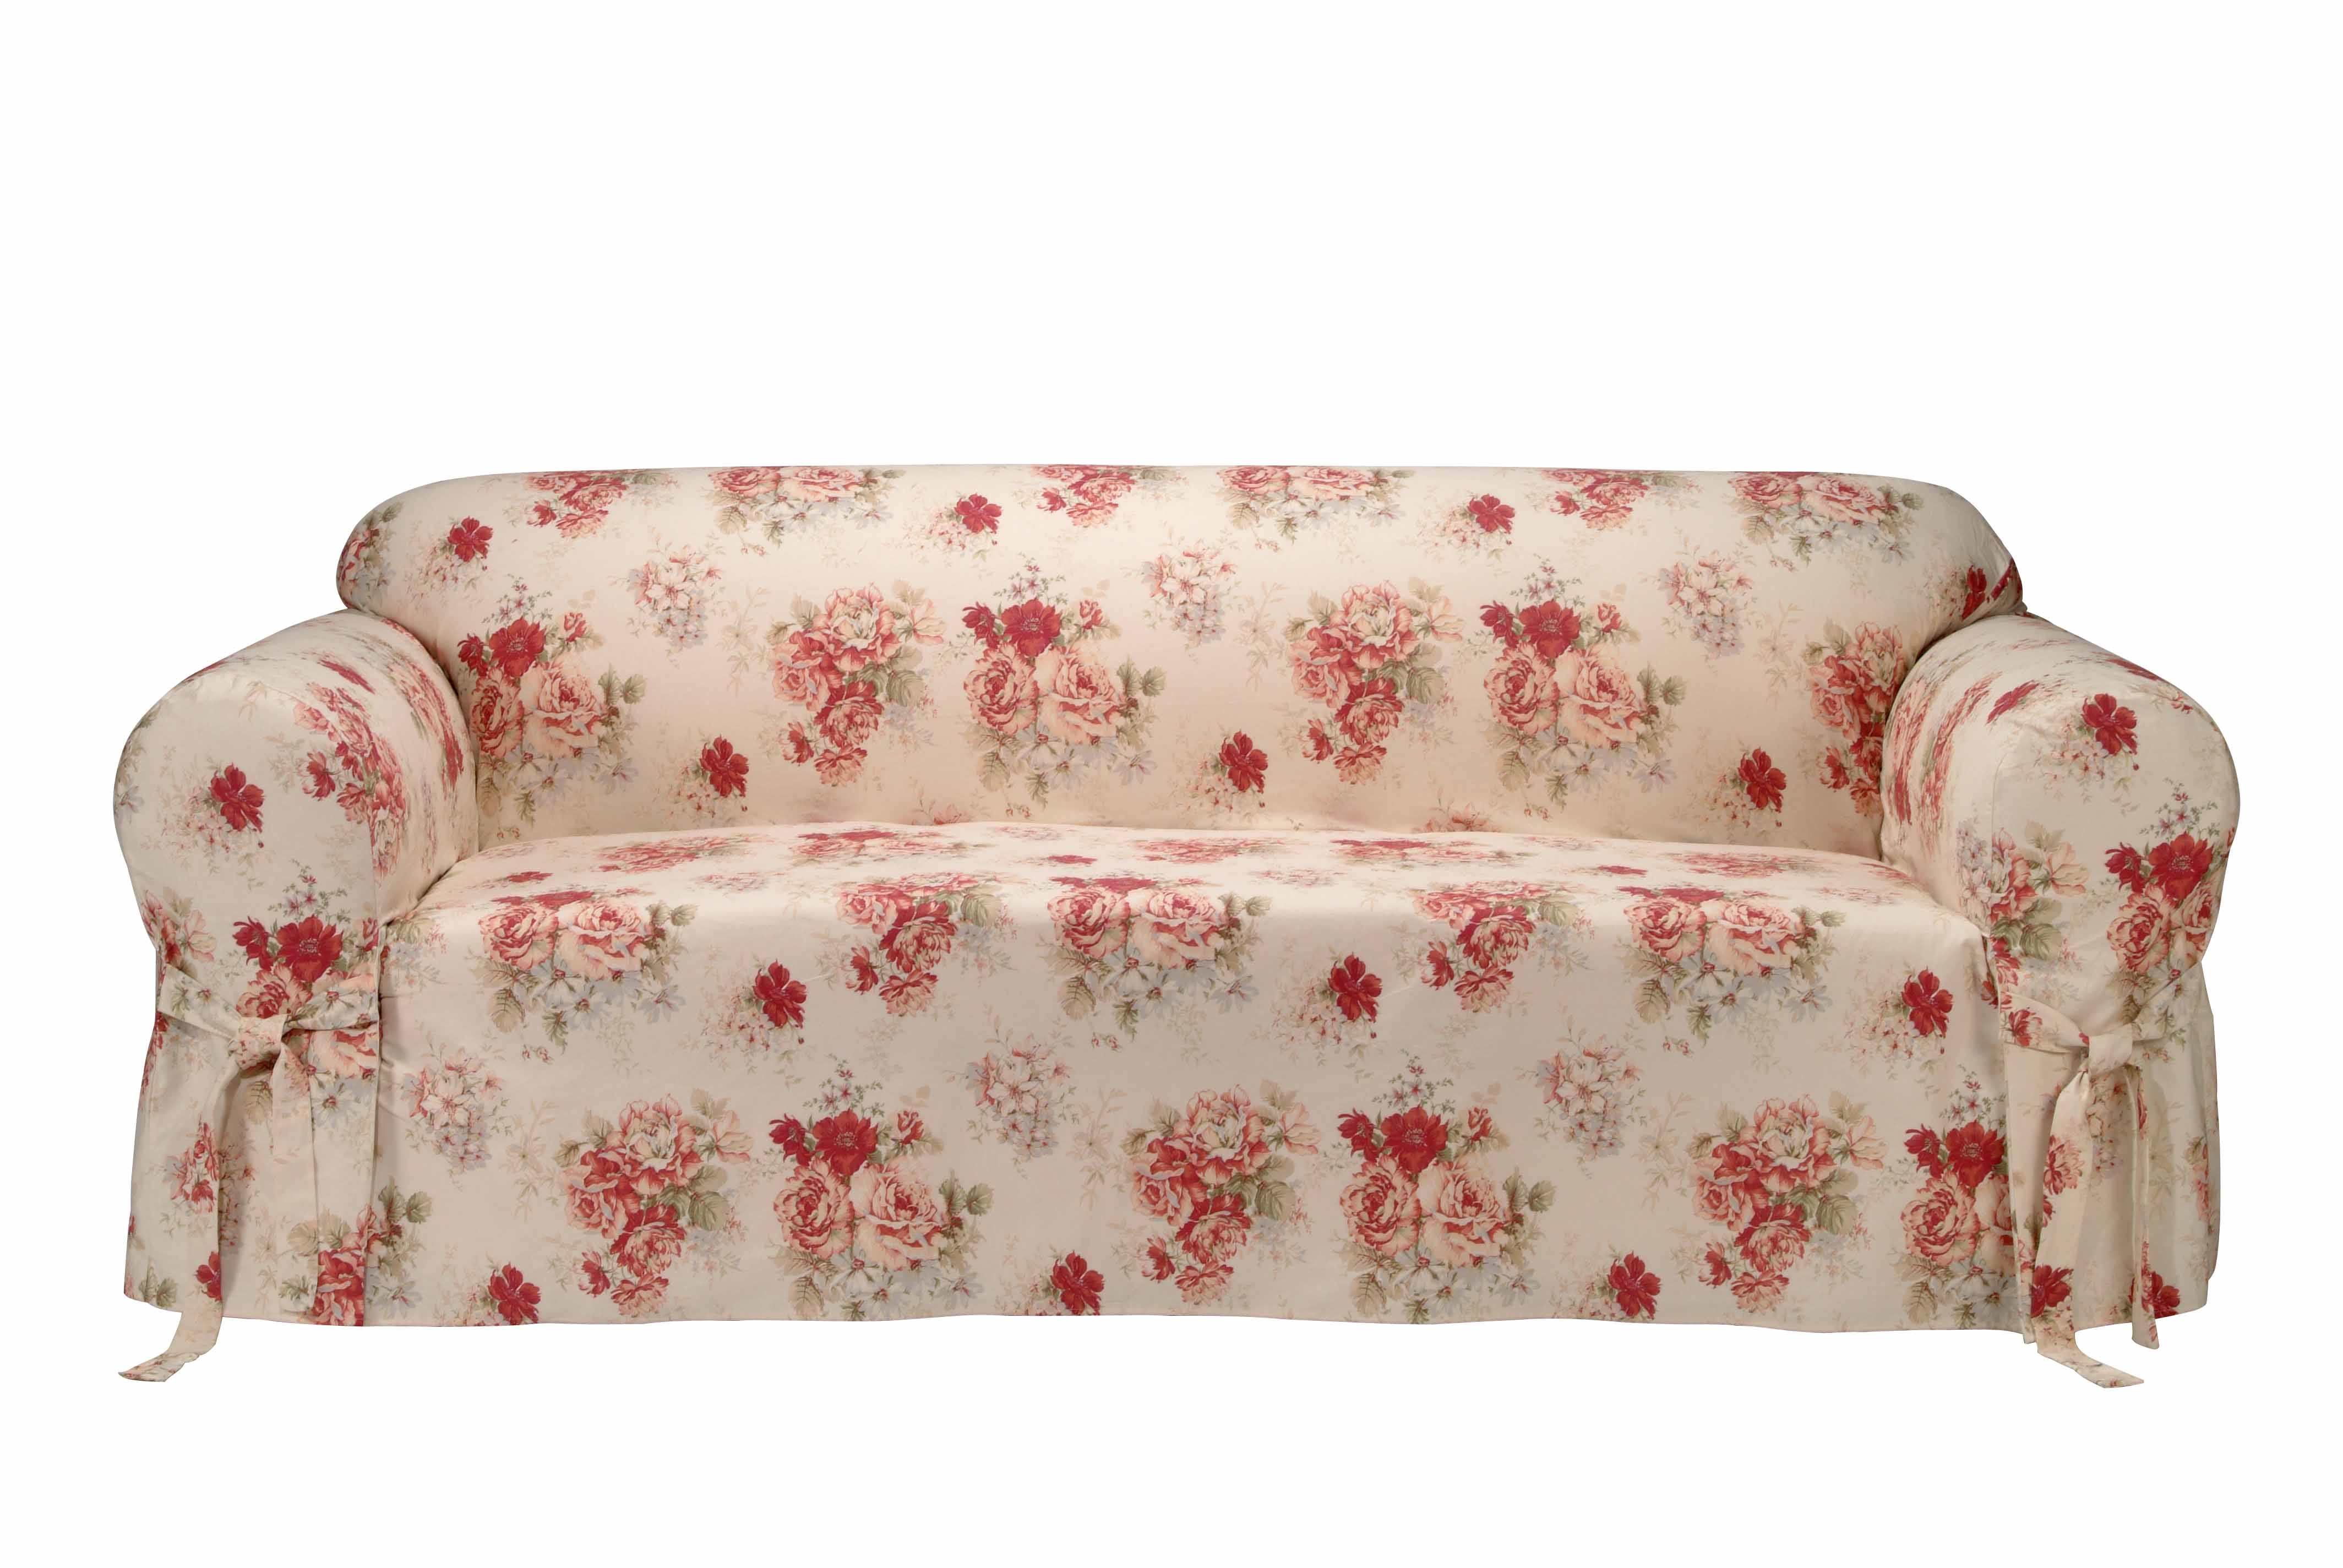 Saras Rose Printed Sofa Slipcover Free Shipping Today Inside Chintz Covered Sofas (Image 14 of 15)